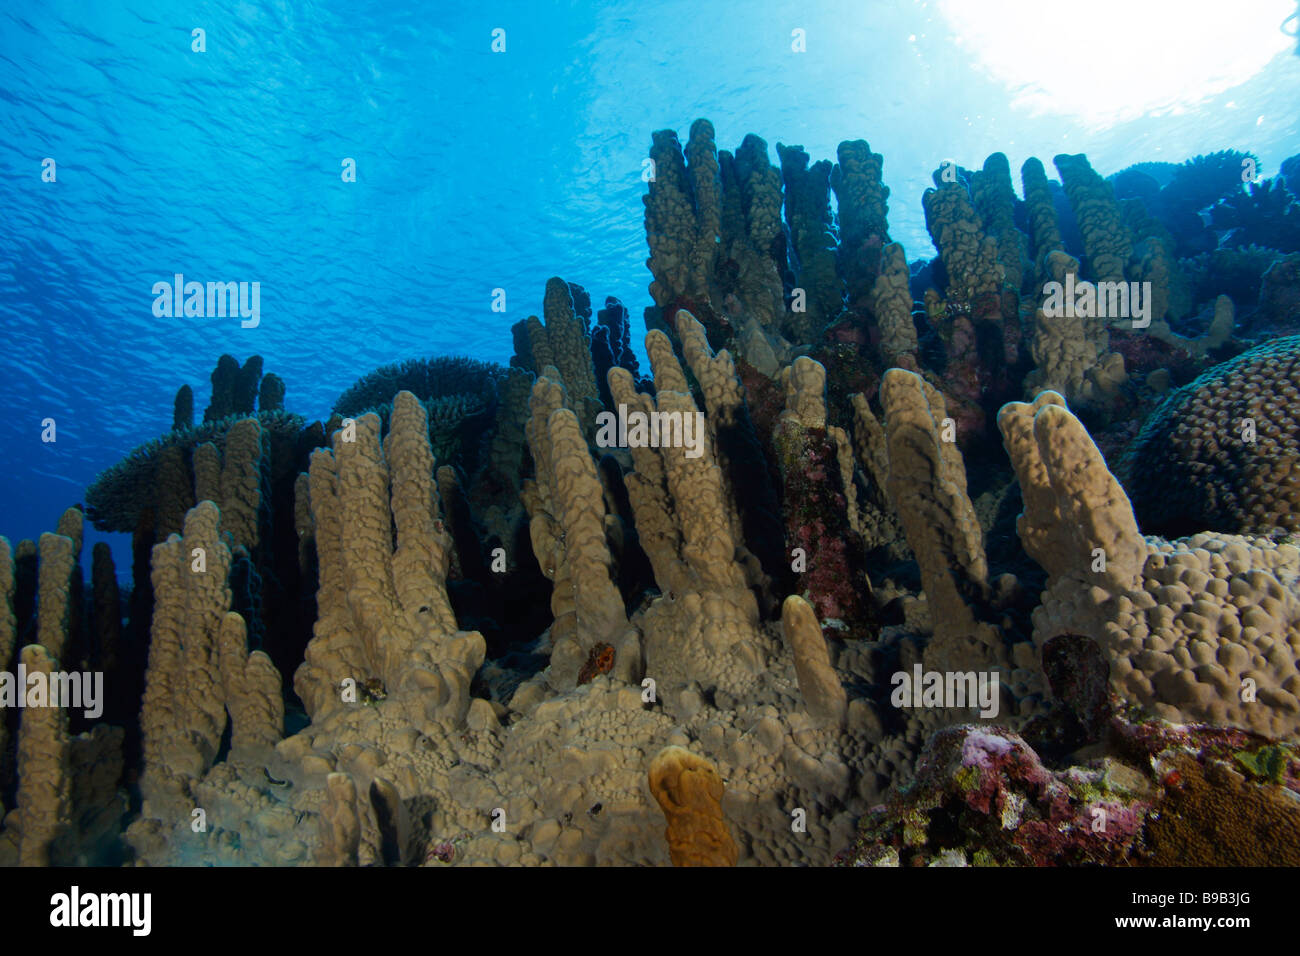 A large reef formation of different types of corals and sponges a large reef formation of different types of corals and sponges sloping from the deep blue up to the sun lit surface of the sea publicscrutiny Gallery